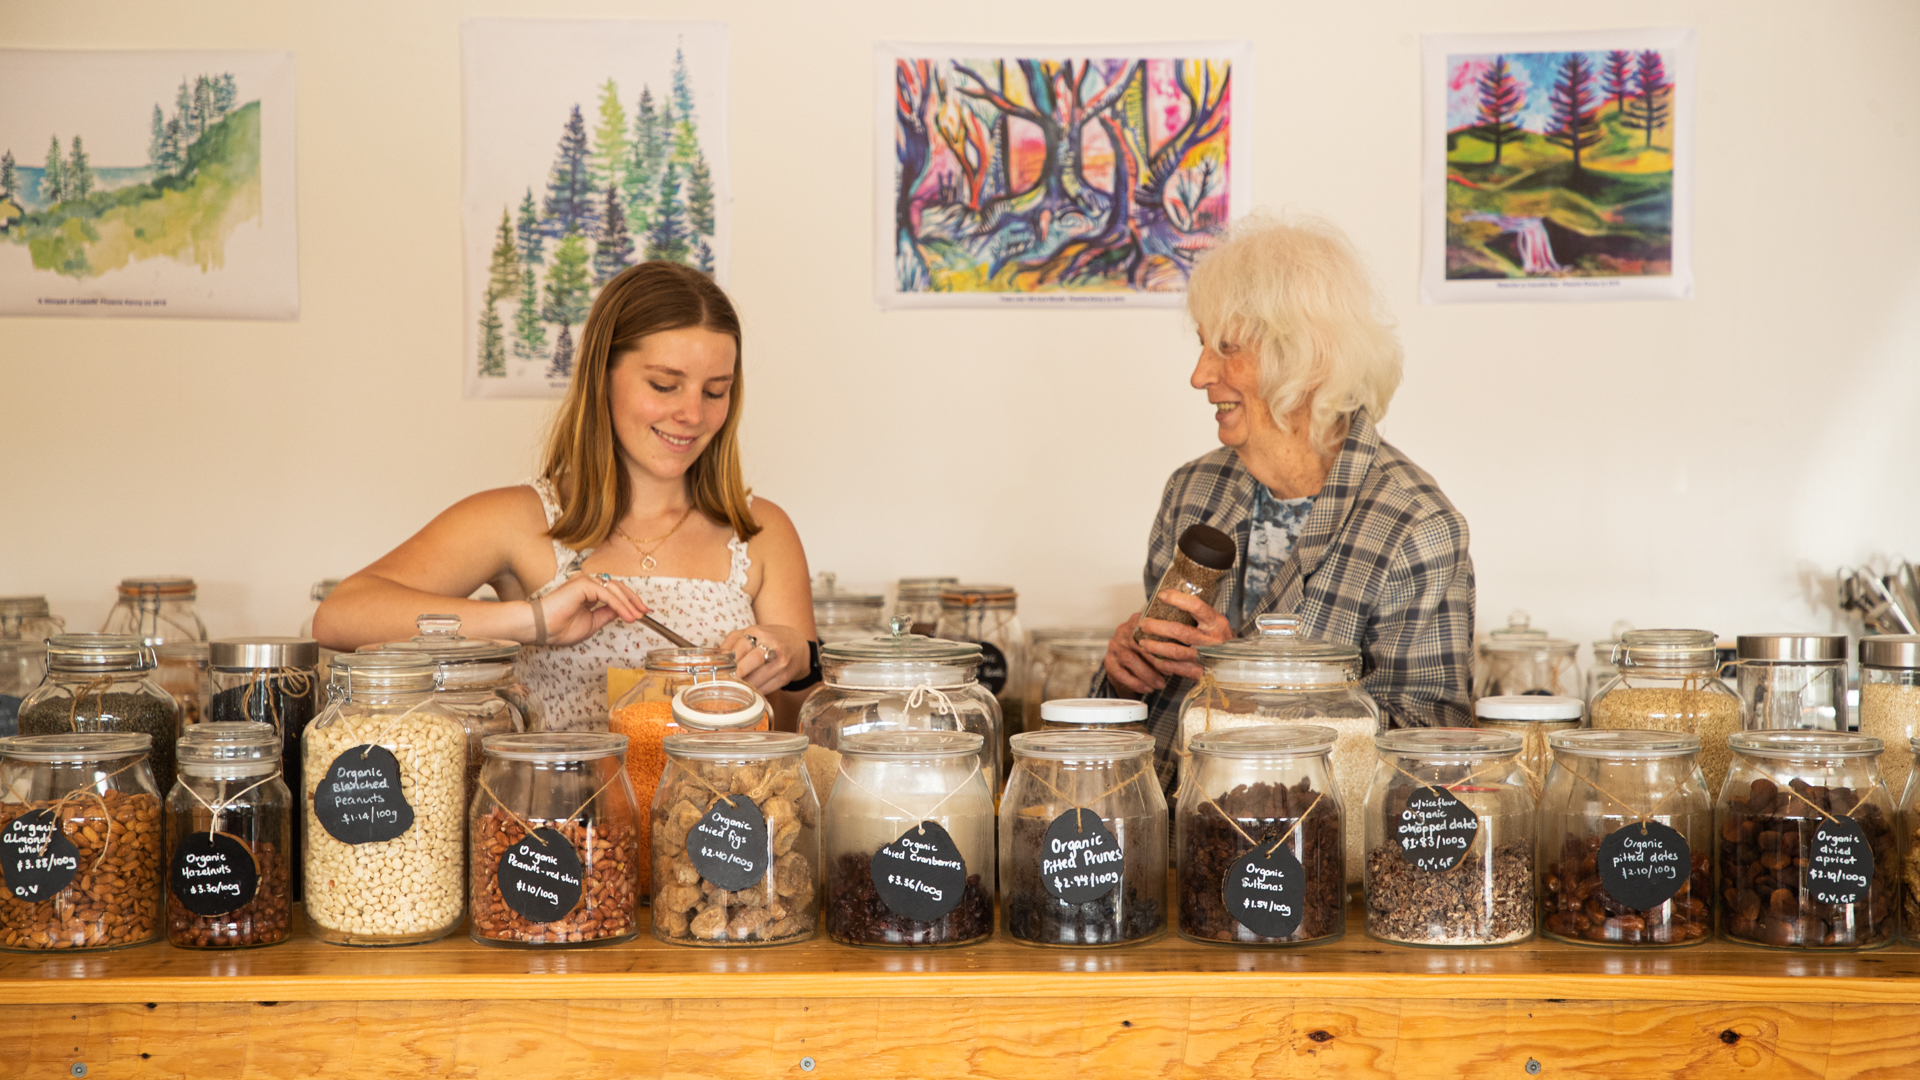 A young woman and an elderly woman smiling as they organize organic food and pantry items into mason jars.